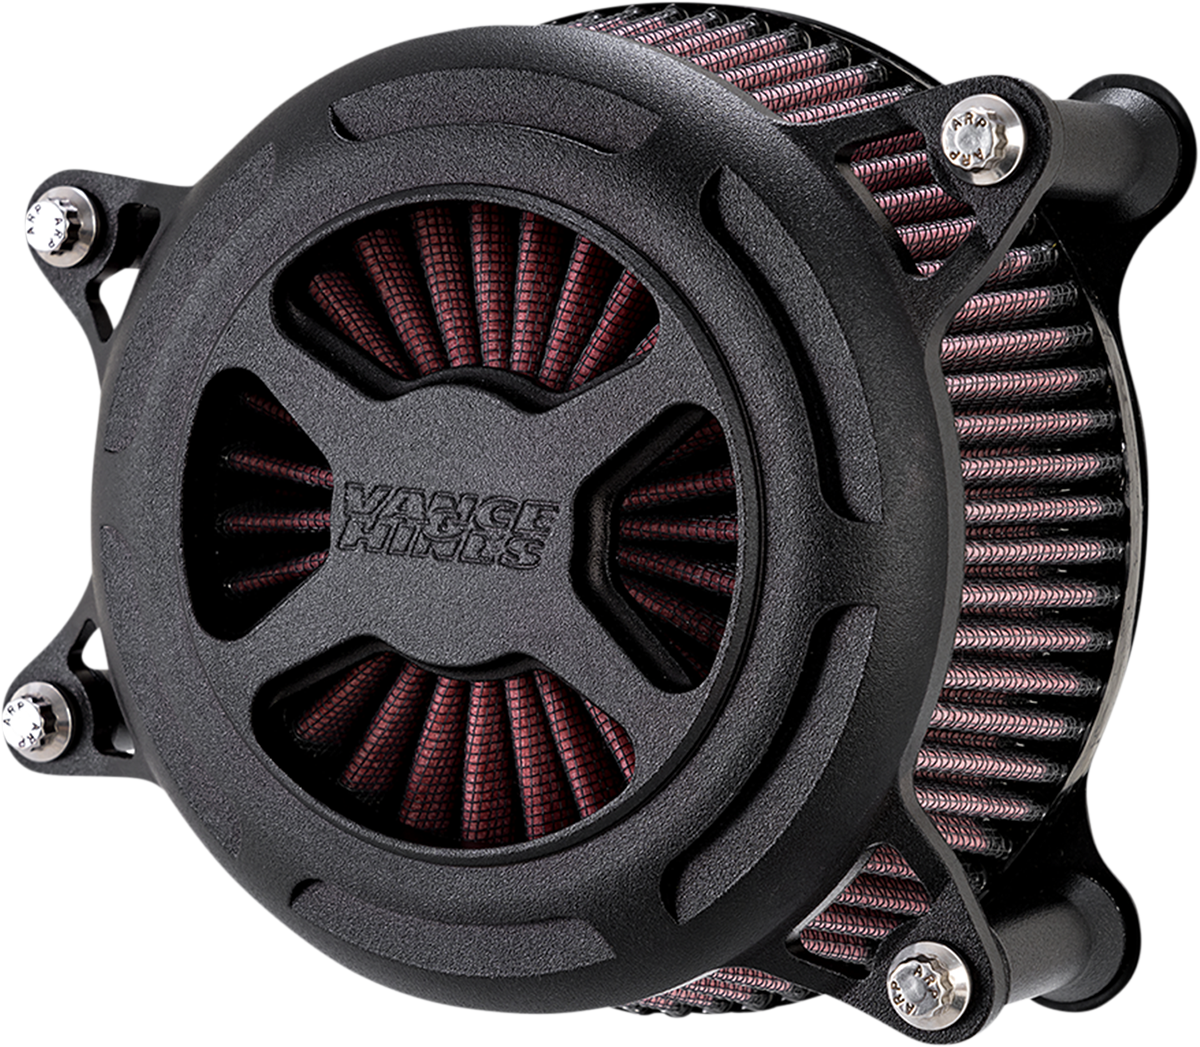 Vance & Hines VO2 X Air Filter Cleaner Kit 1999-2017 Harley Dyna FXDL DXDB FXDL